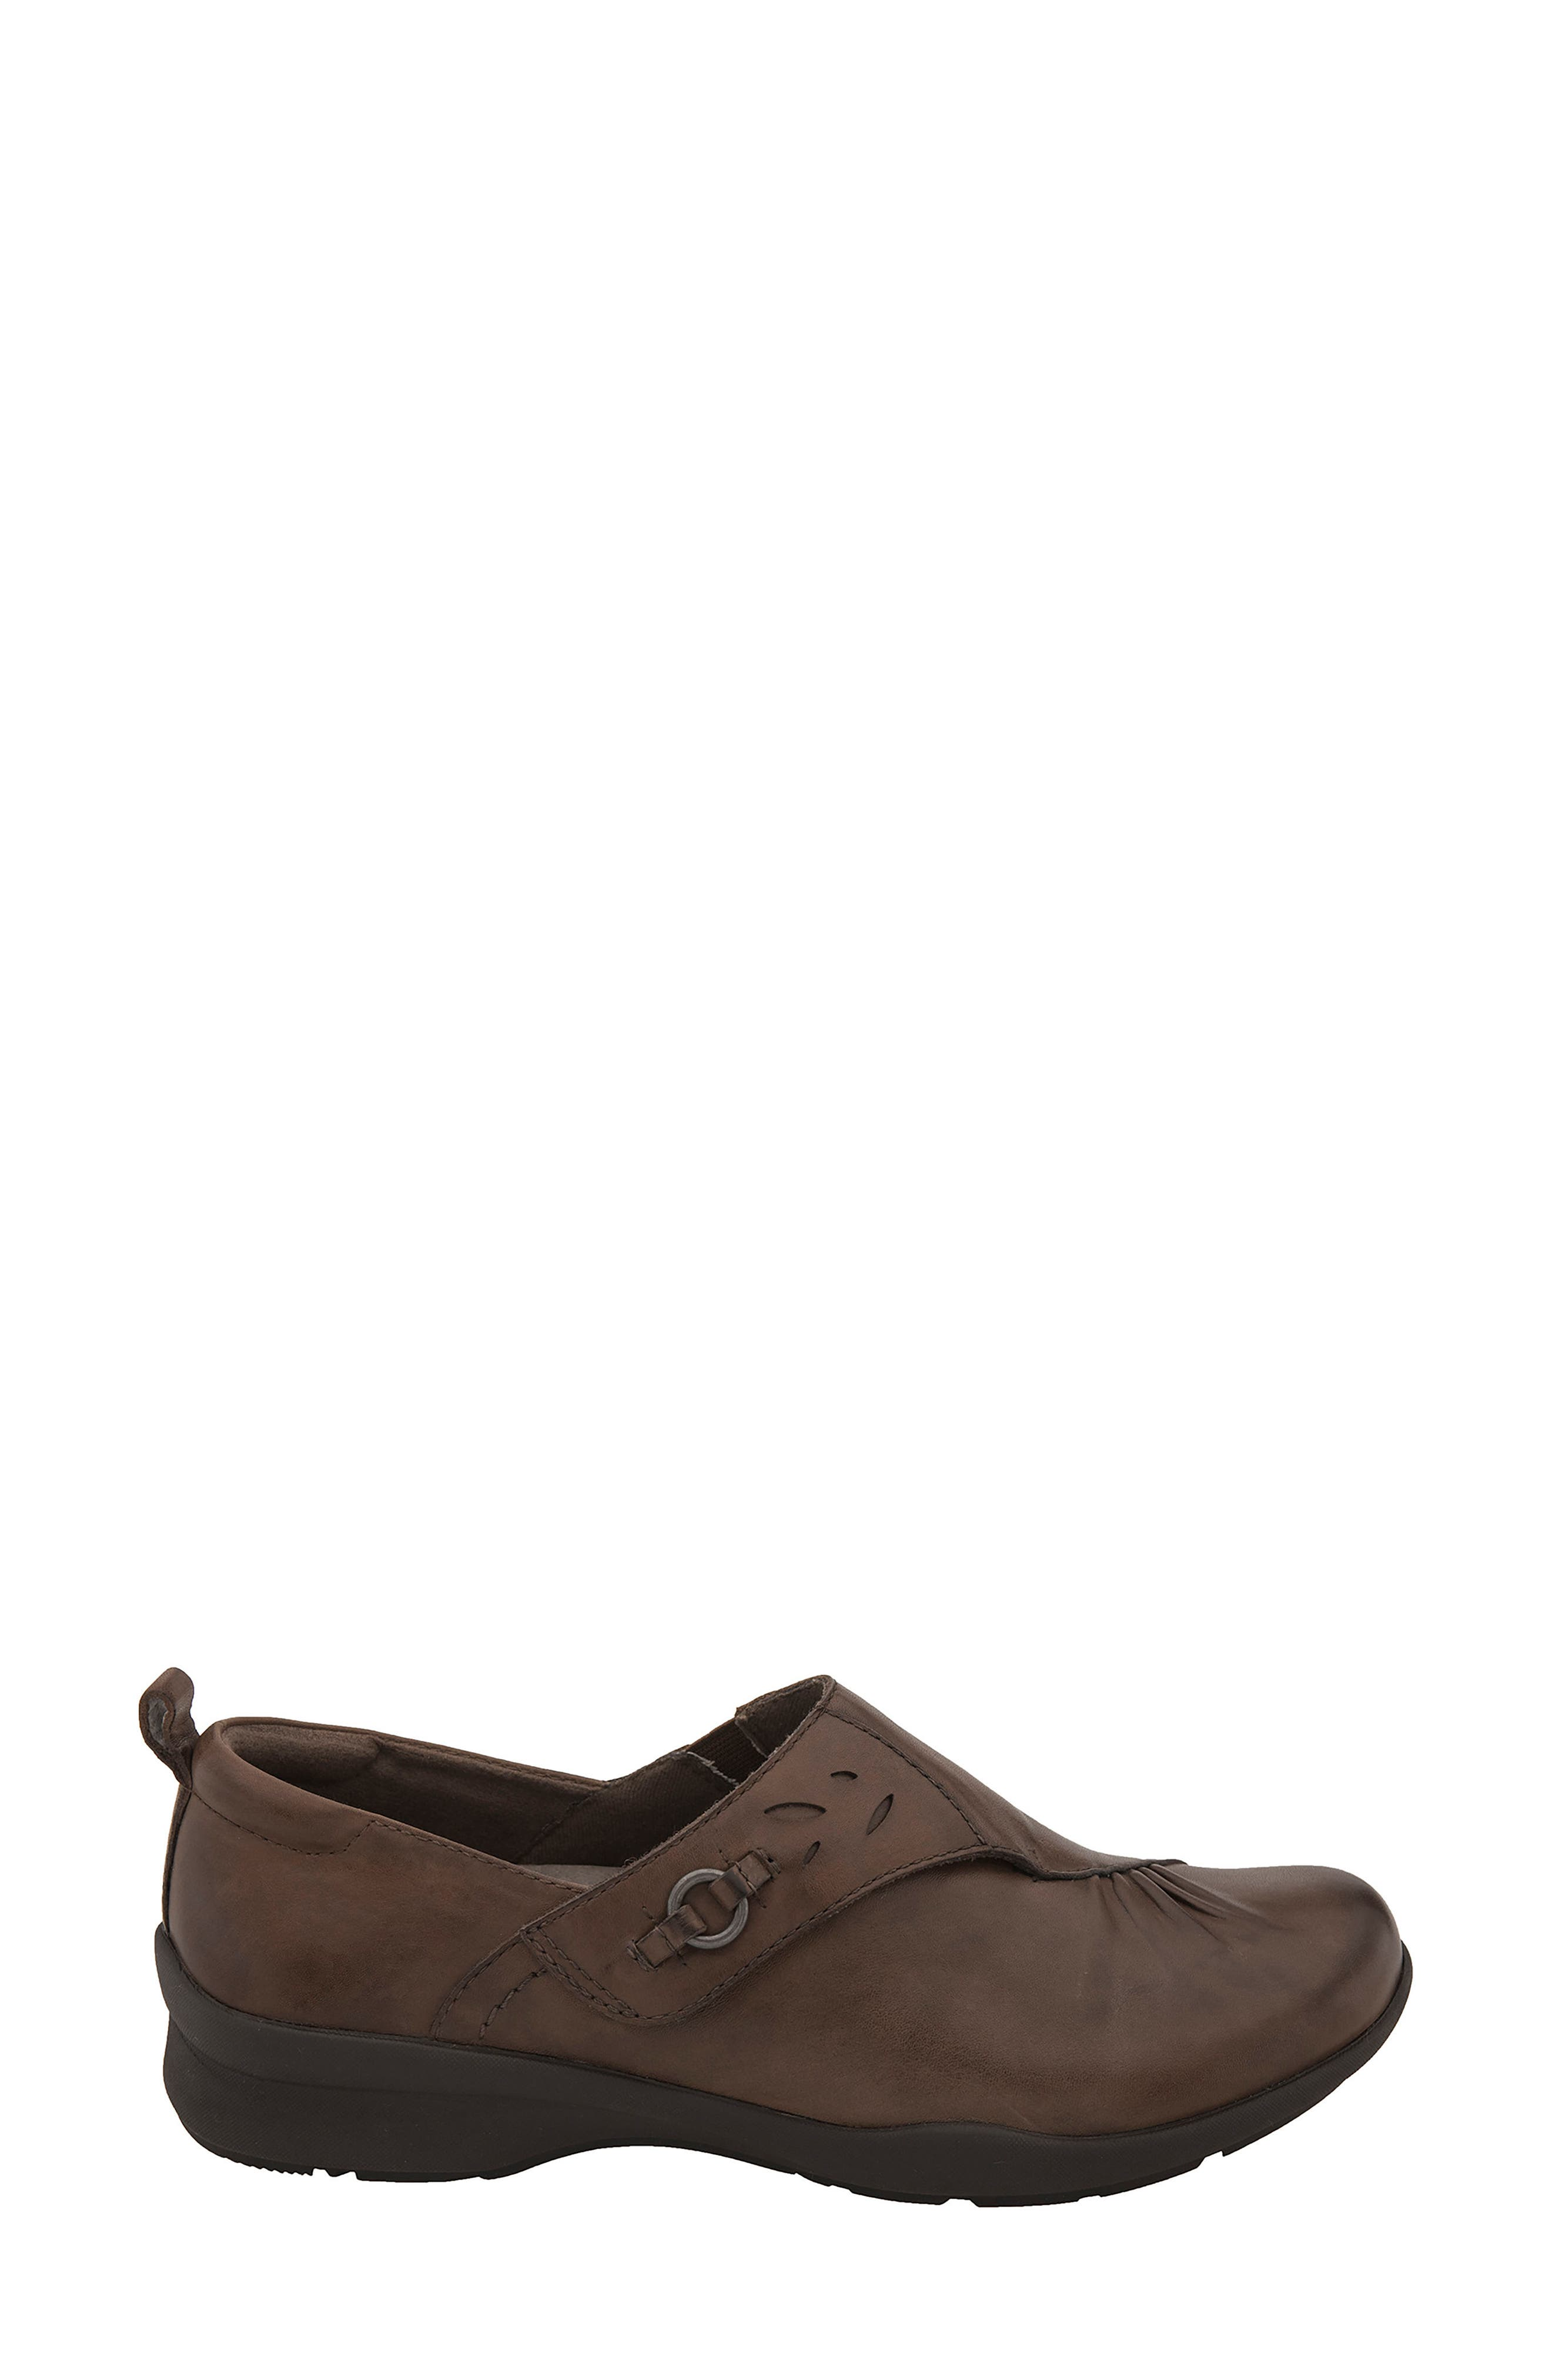 Amity Loafer,                             Alternate thumbnail 3, color,                             Almond Leather